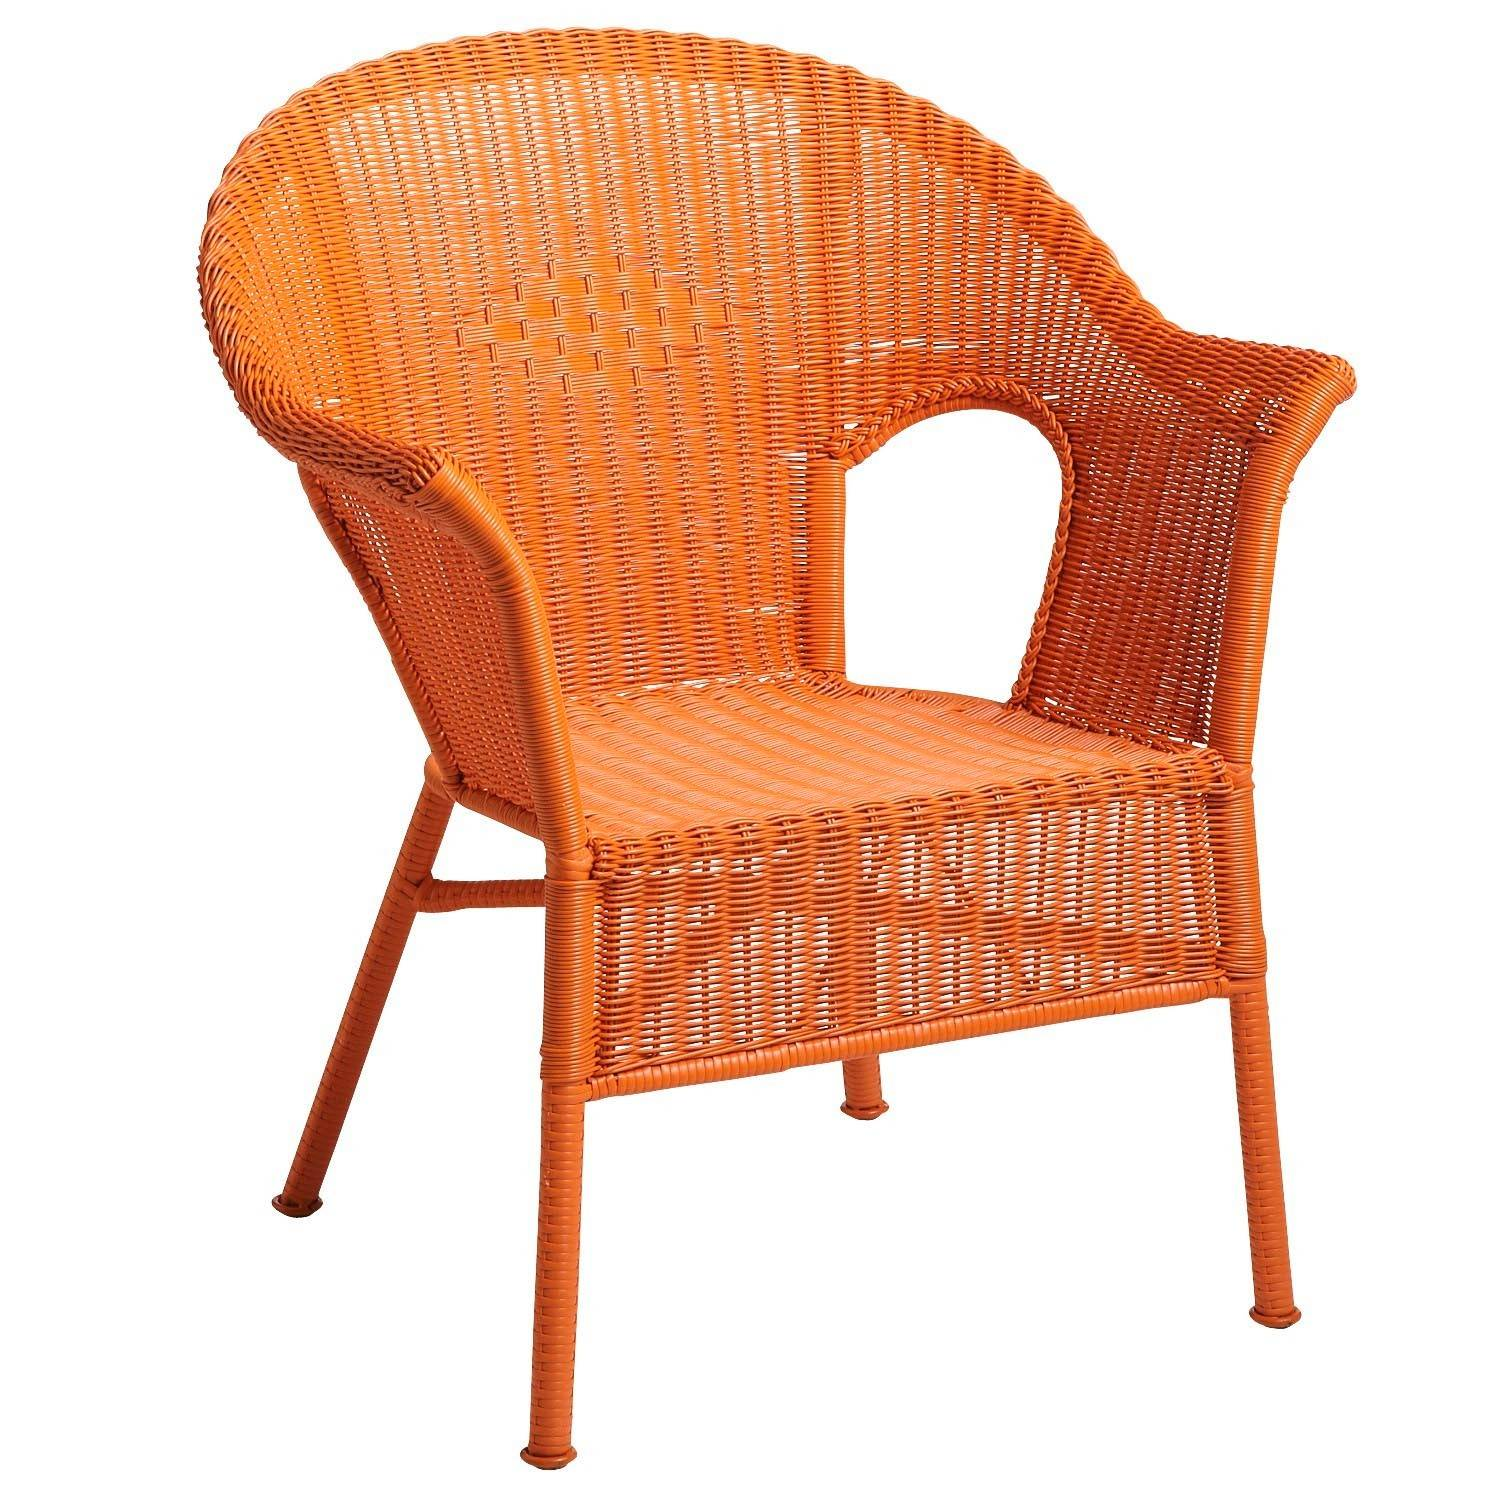 A Casbah chair in weather resistant rattan that comes in a variety of bright hues like orange, yellow and purple. Outdoor spaces are a good place to play with more vibrant colors than we might use indoors.